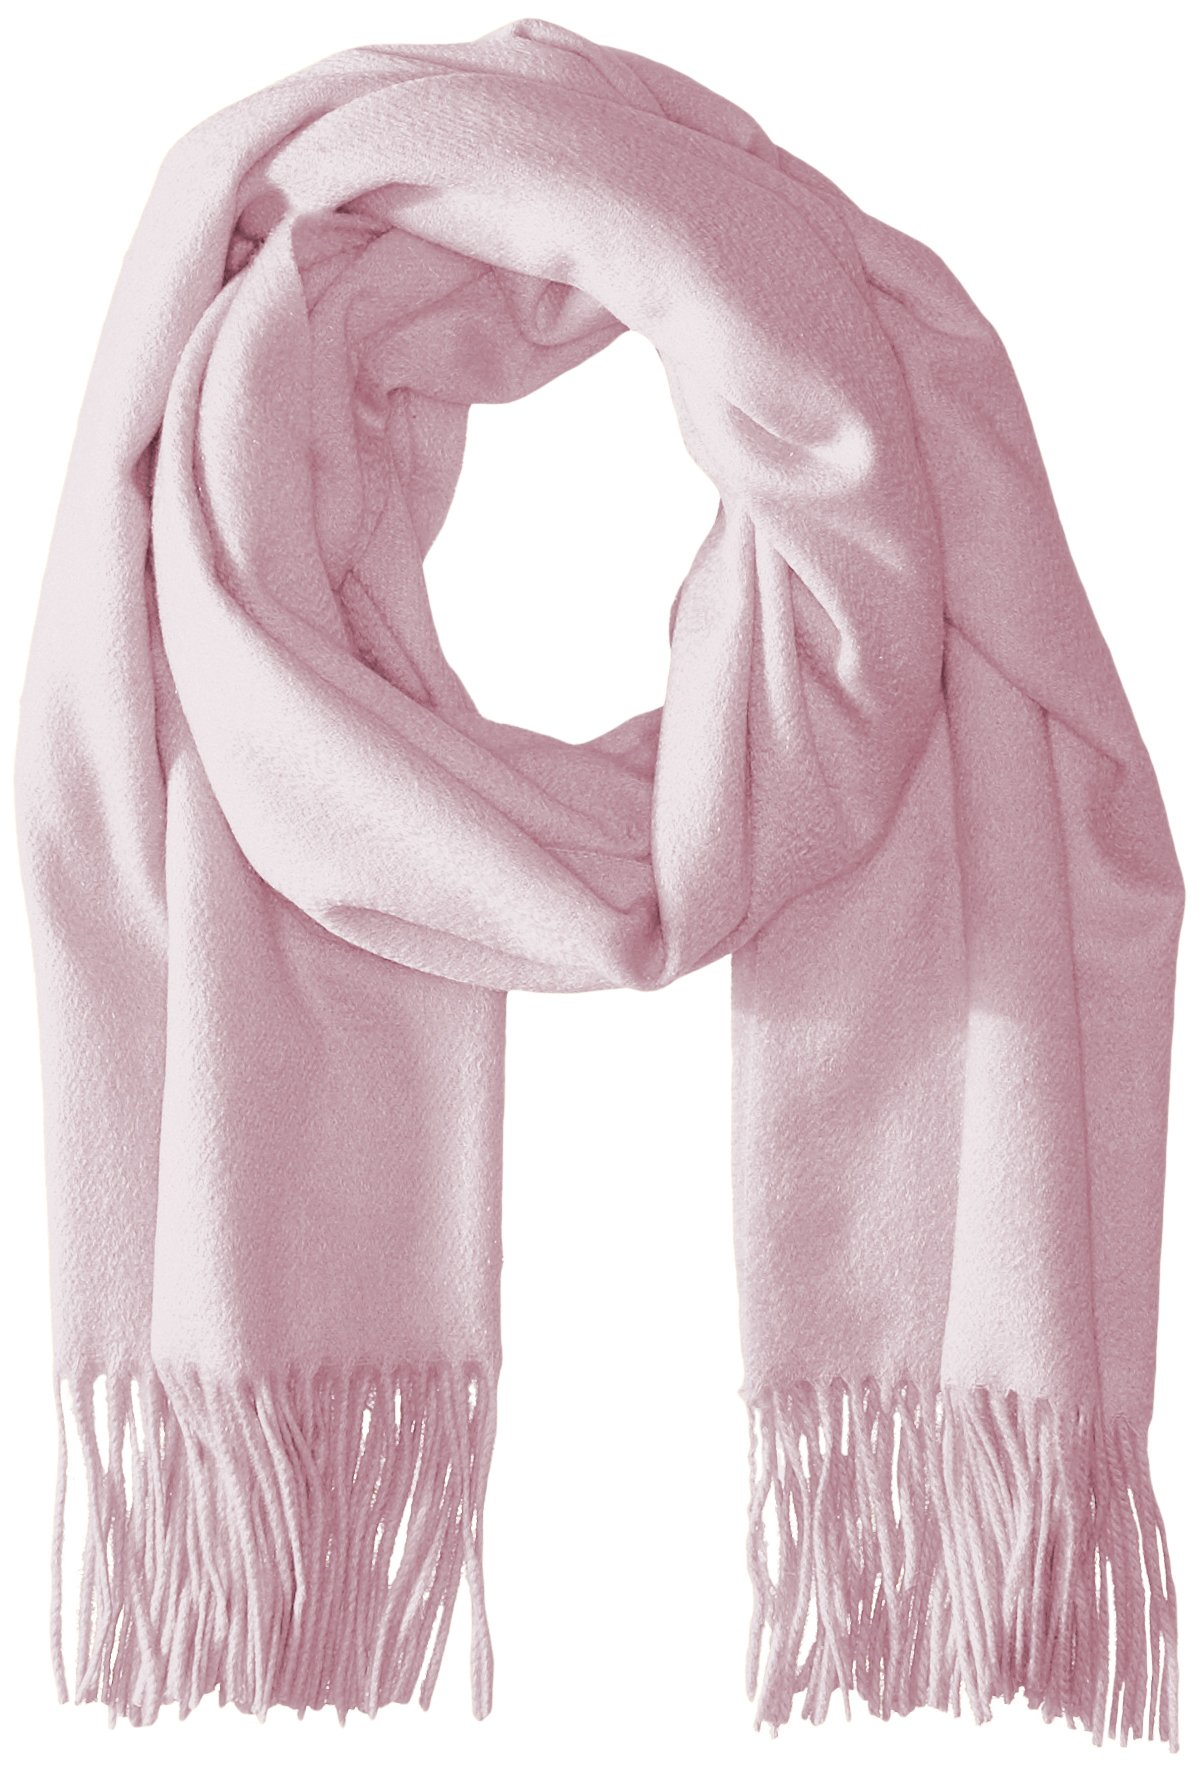 Sofia Cashmere Women's 100 Percent Cashmere Fringed Stole Scarf, Pale Pink, One Size